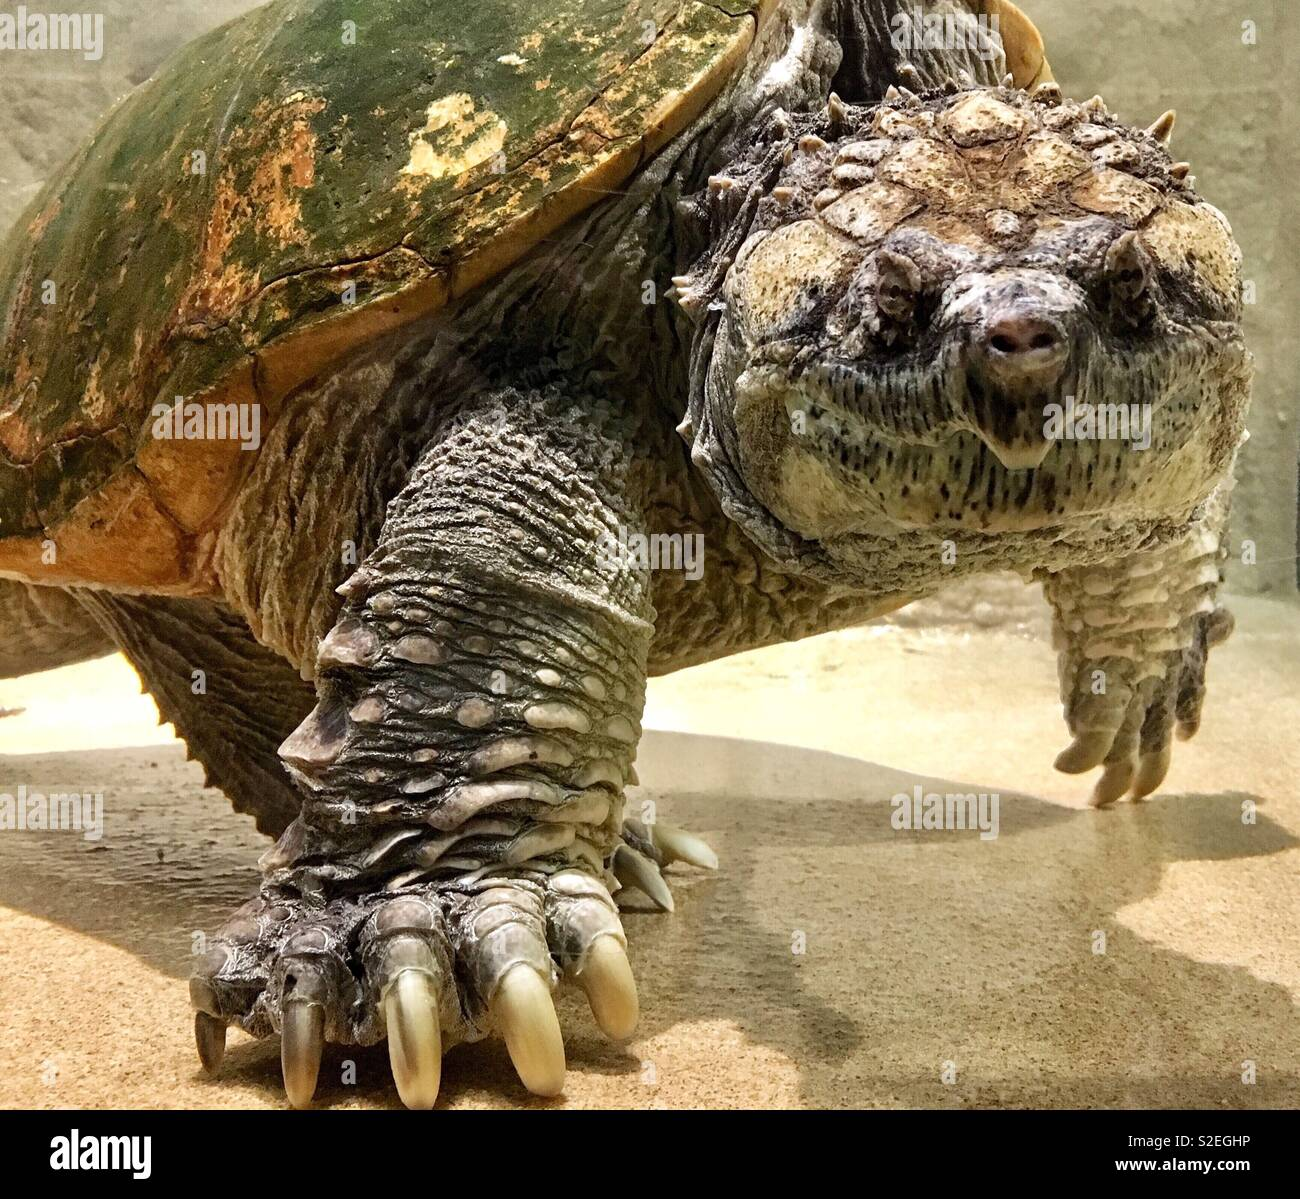 Angry Turtle Stock Photos & Angry Turtle Stock Images - Alamy